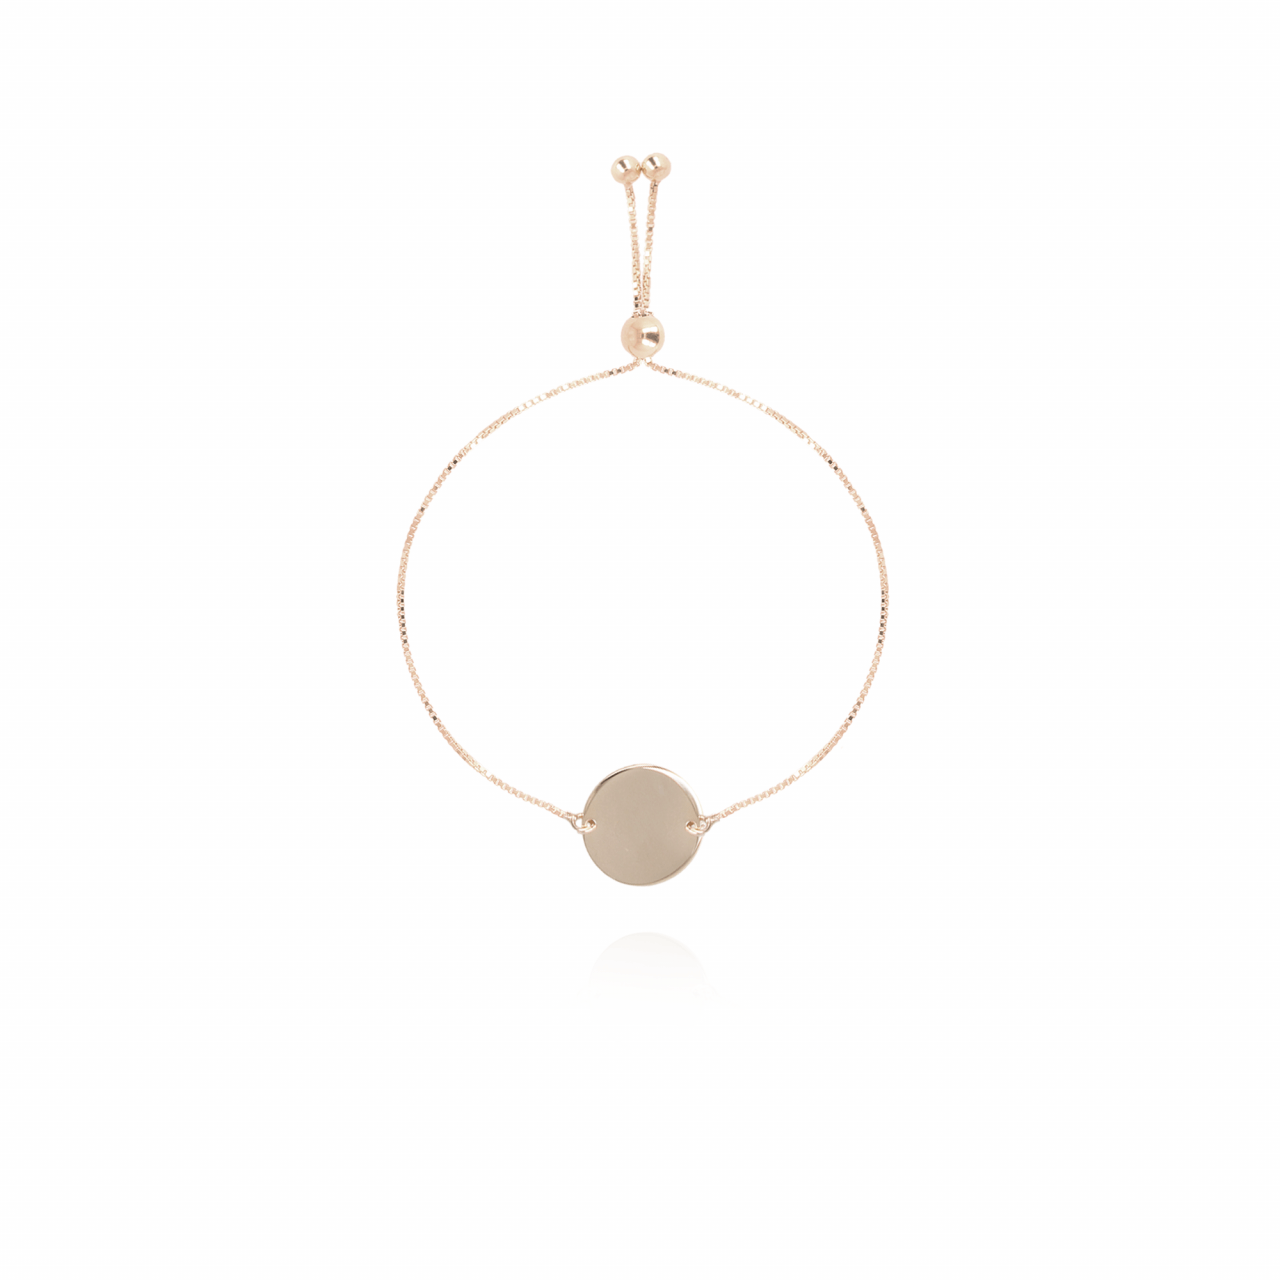 Rosé Golden Clear Coin bracelet